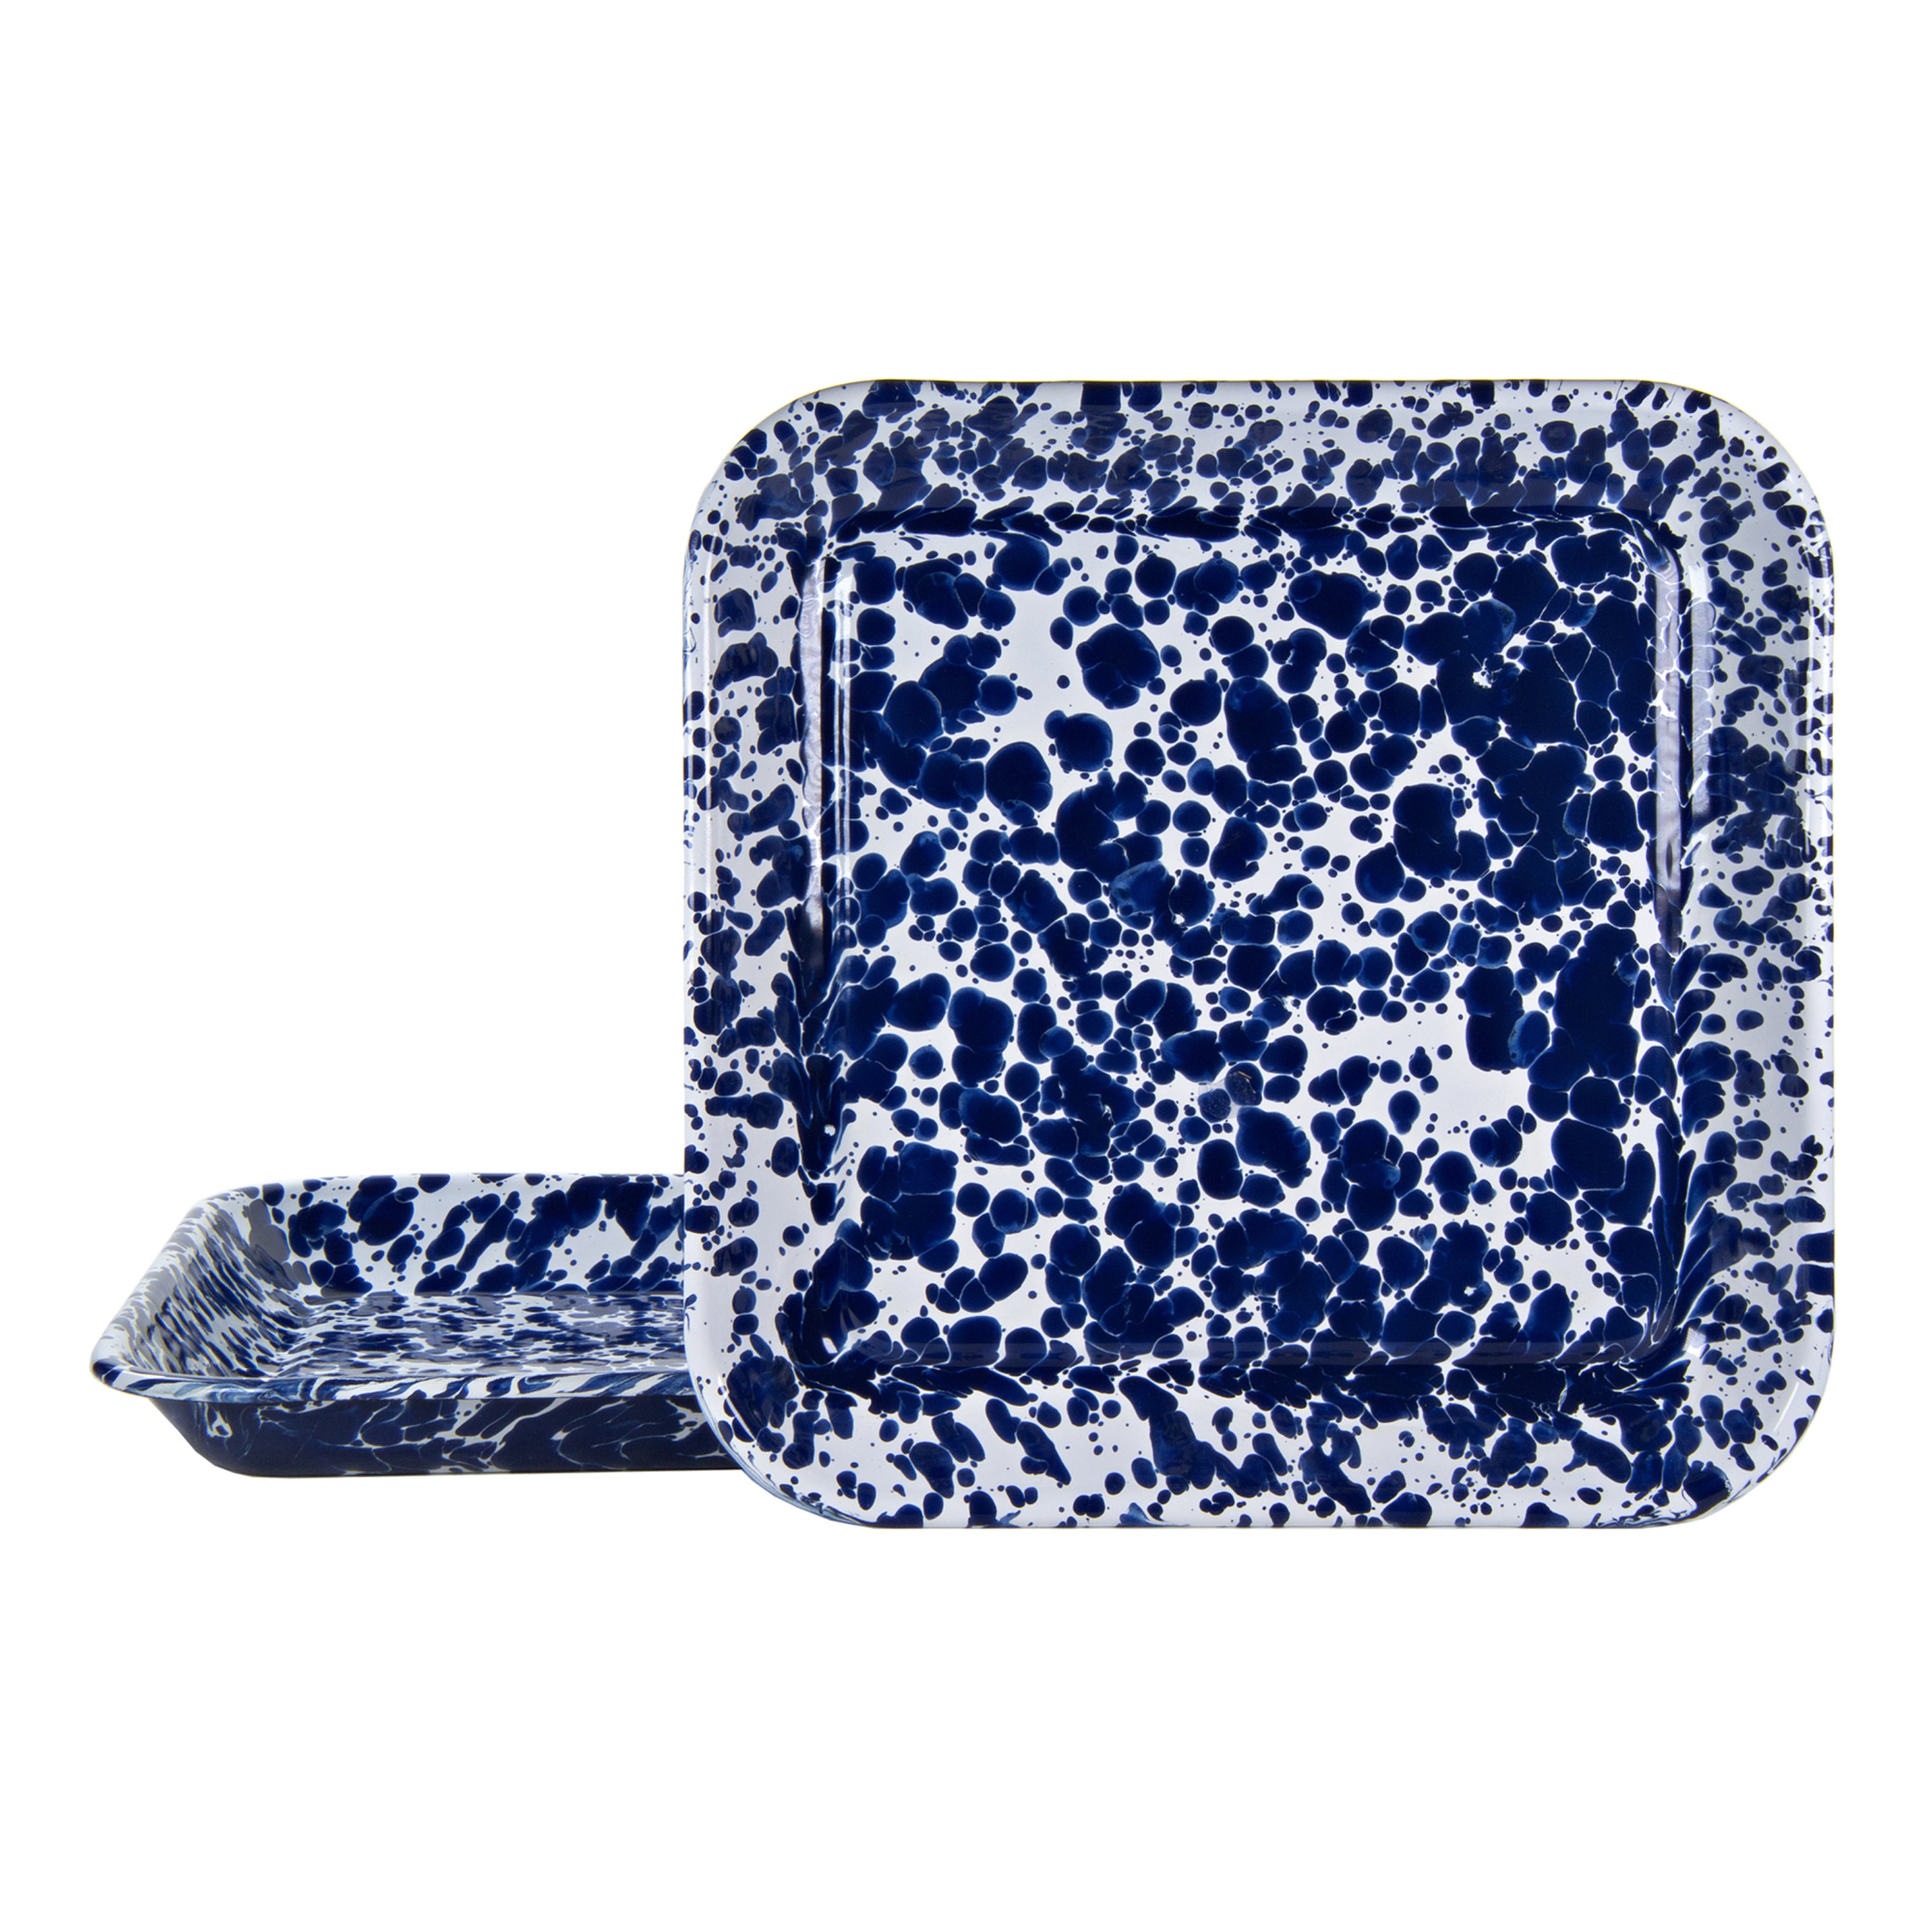 CB09S2 - Set of 2 Cobalt Swirl Square Trays Image 1